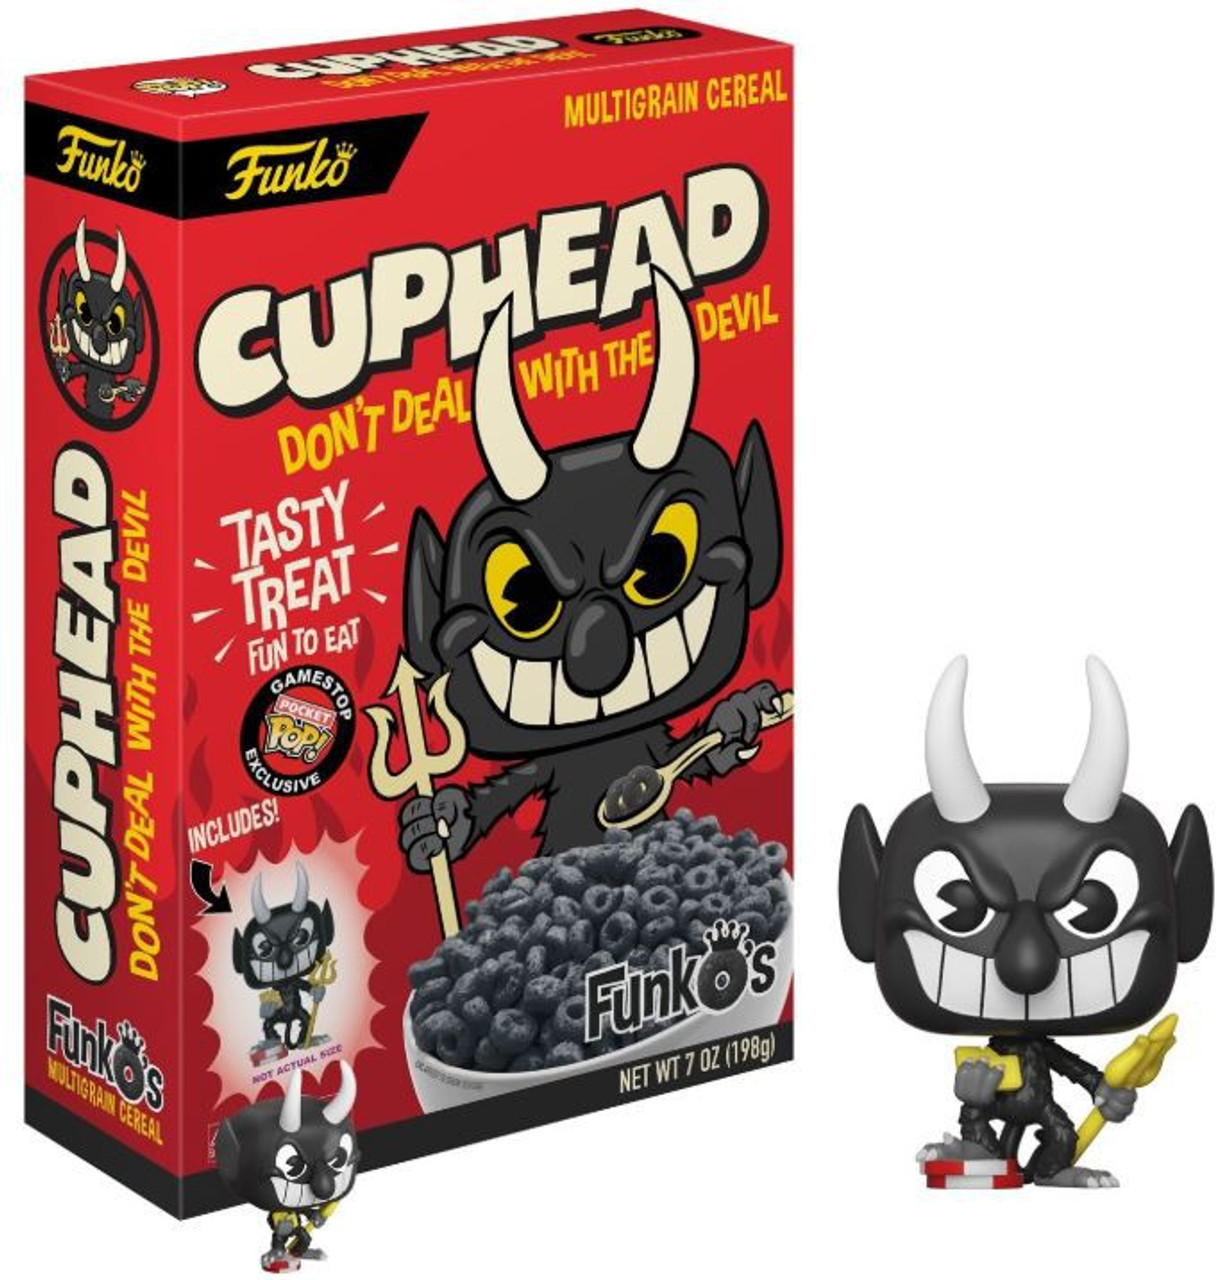 FunkOs Cuphead Exclusive 7 Oz. Breakfast Cereal Red Box